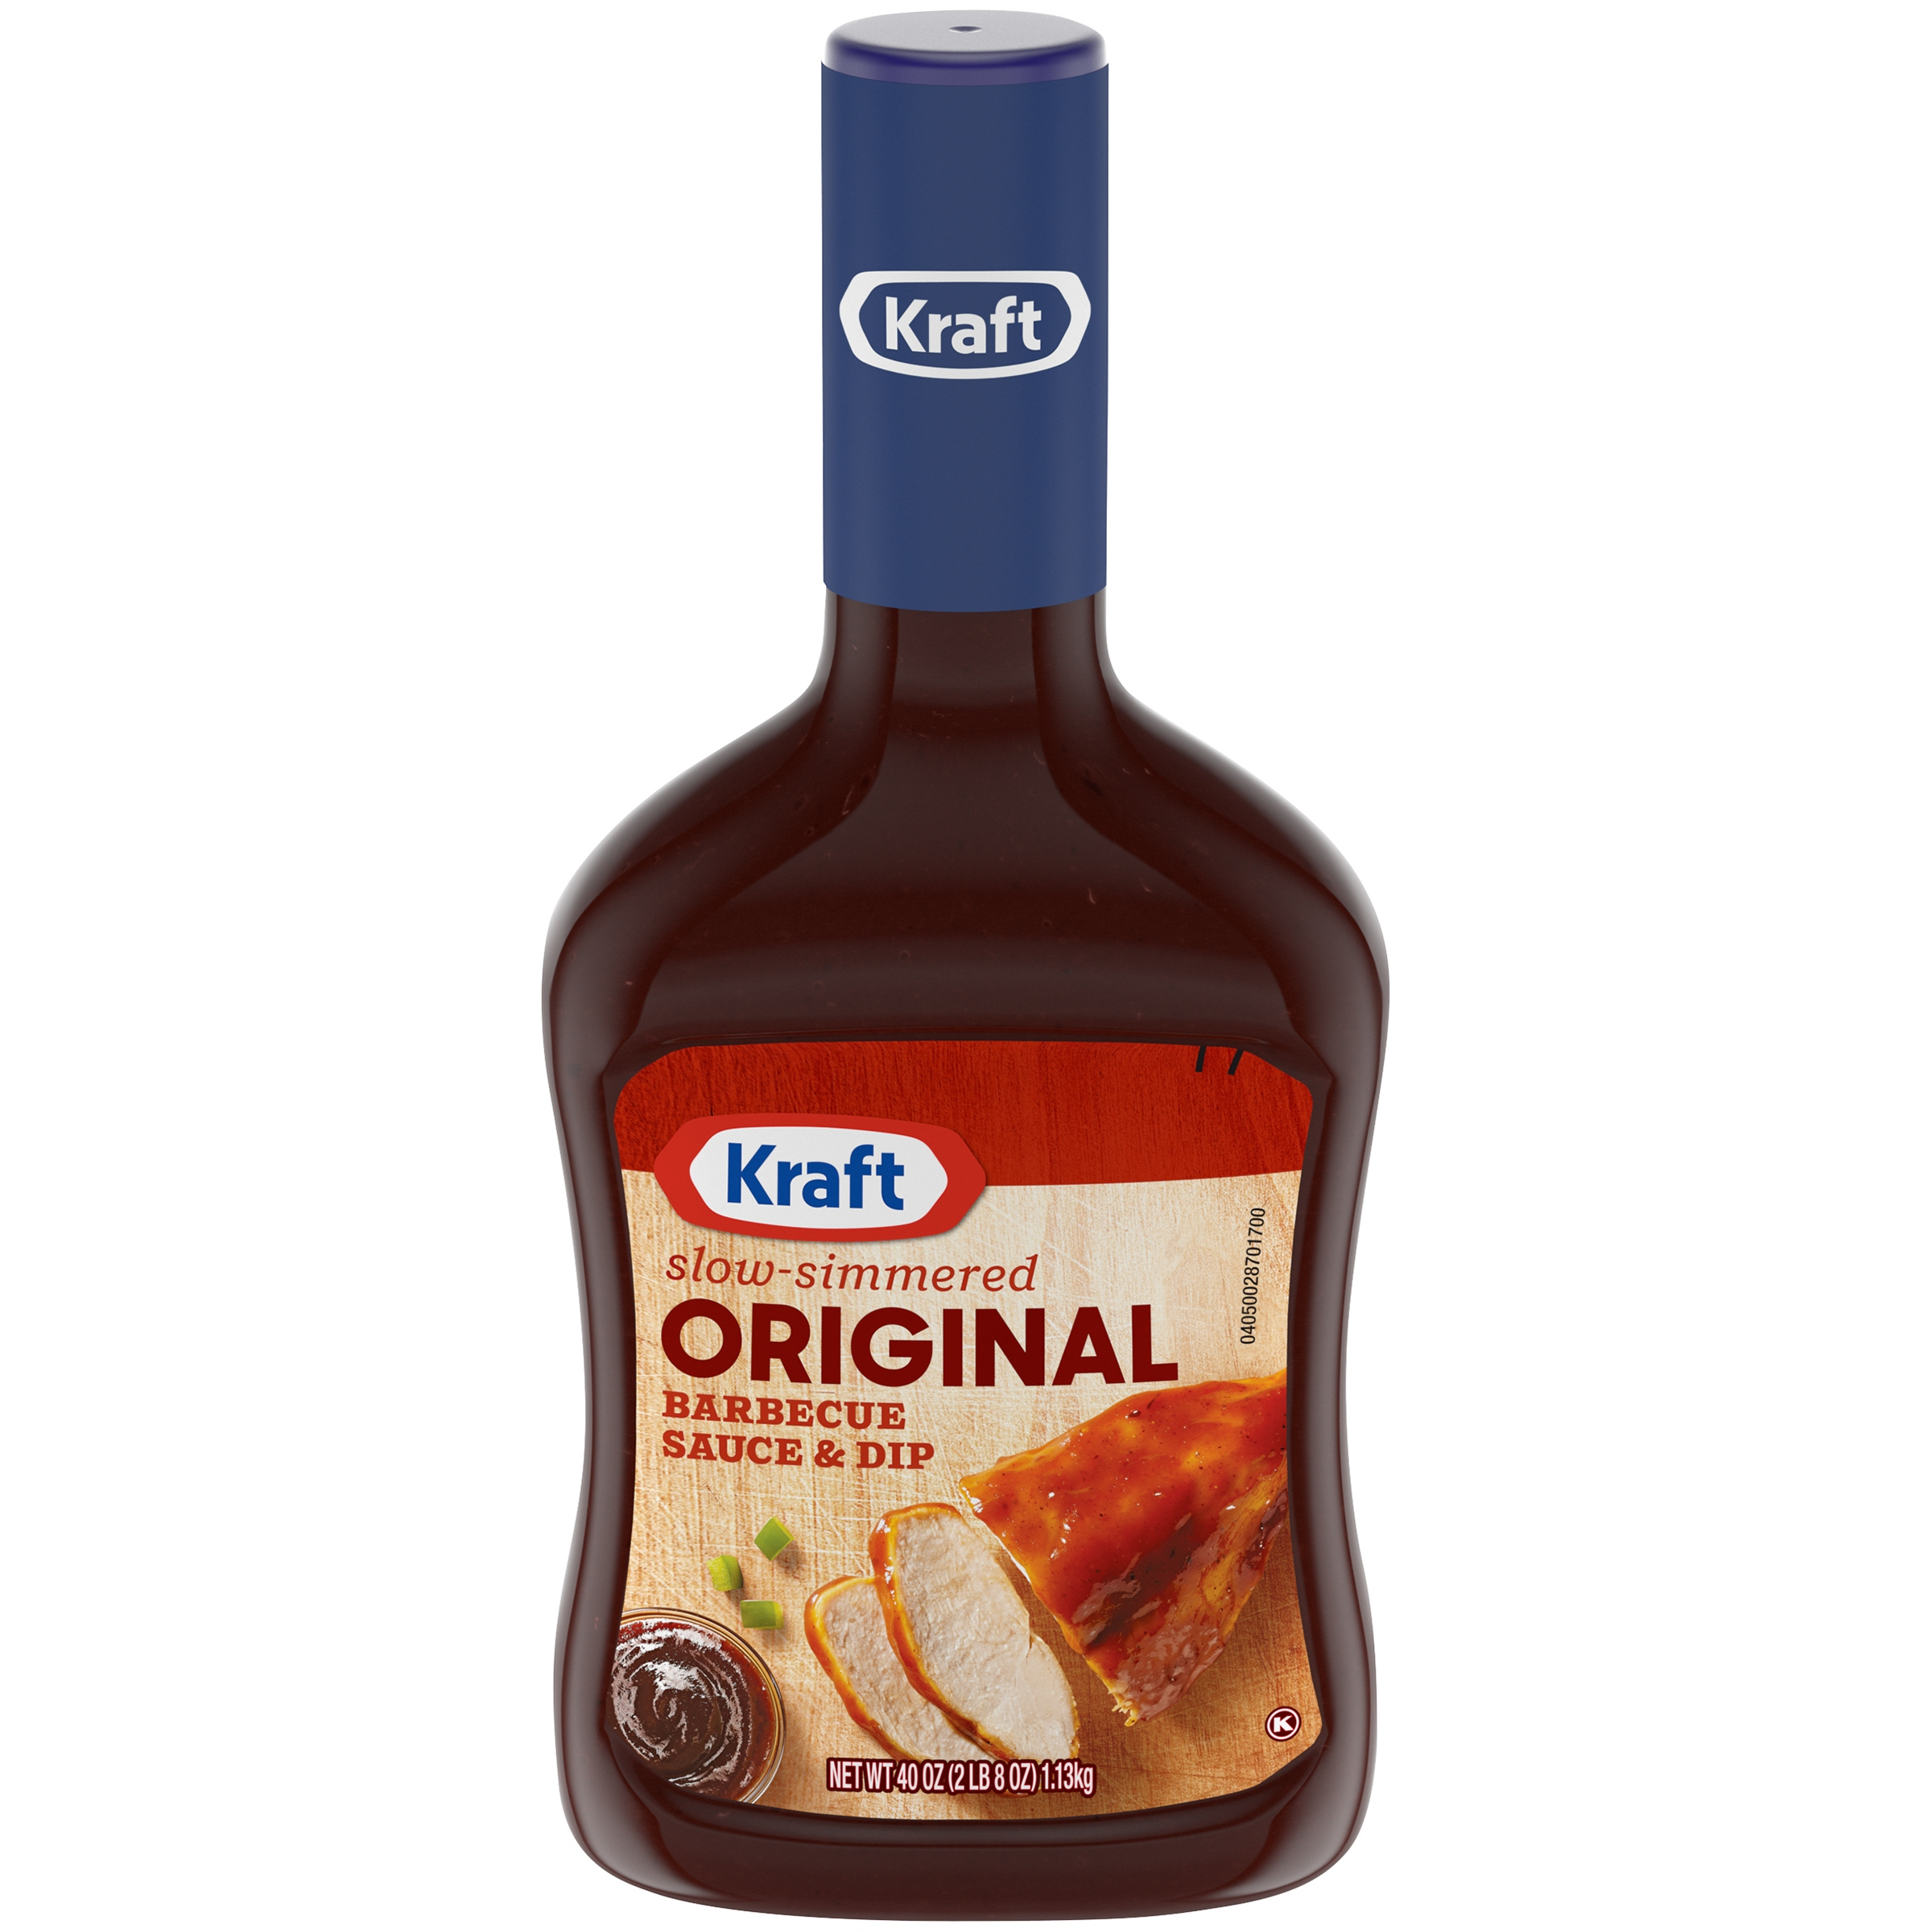 Kraft Slow-Simmered Original Barbecue Sauce & Dip 40 oz. Bottle